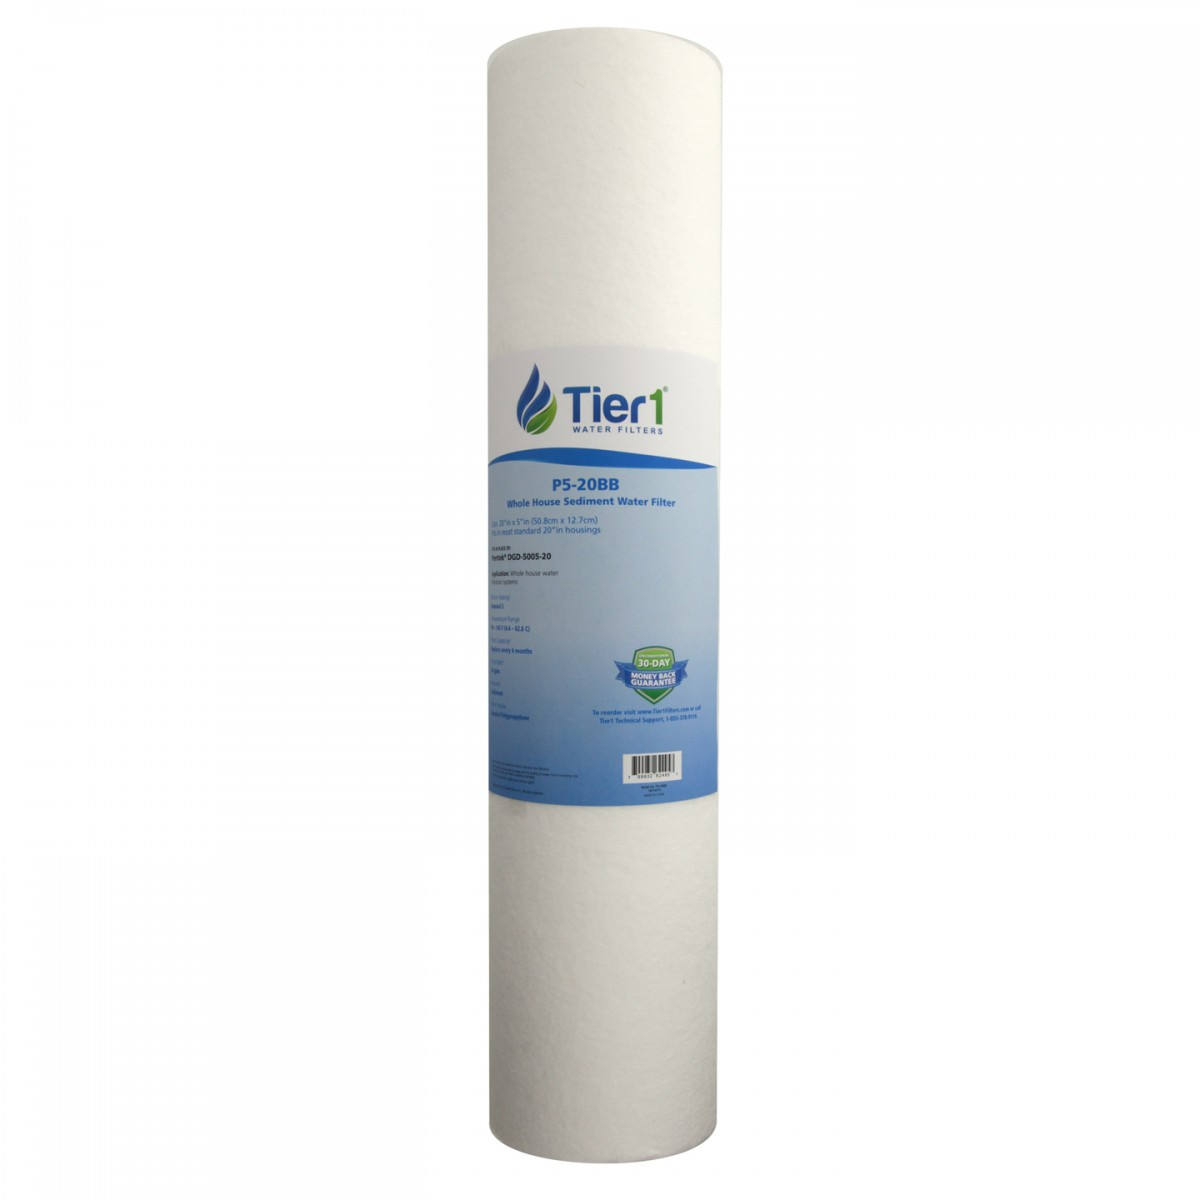 20 x 45 spun wound replacement filter by tier1 5 micron